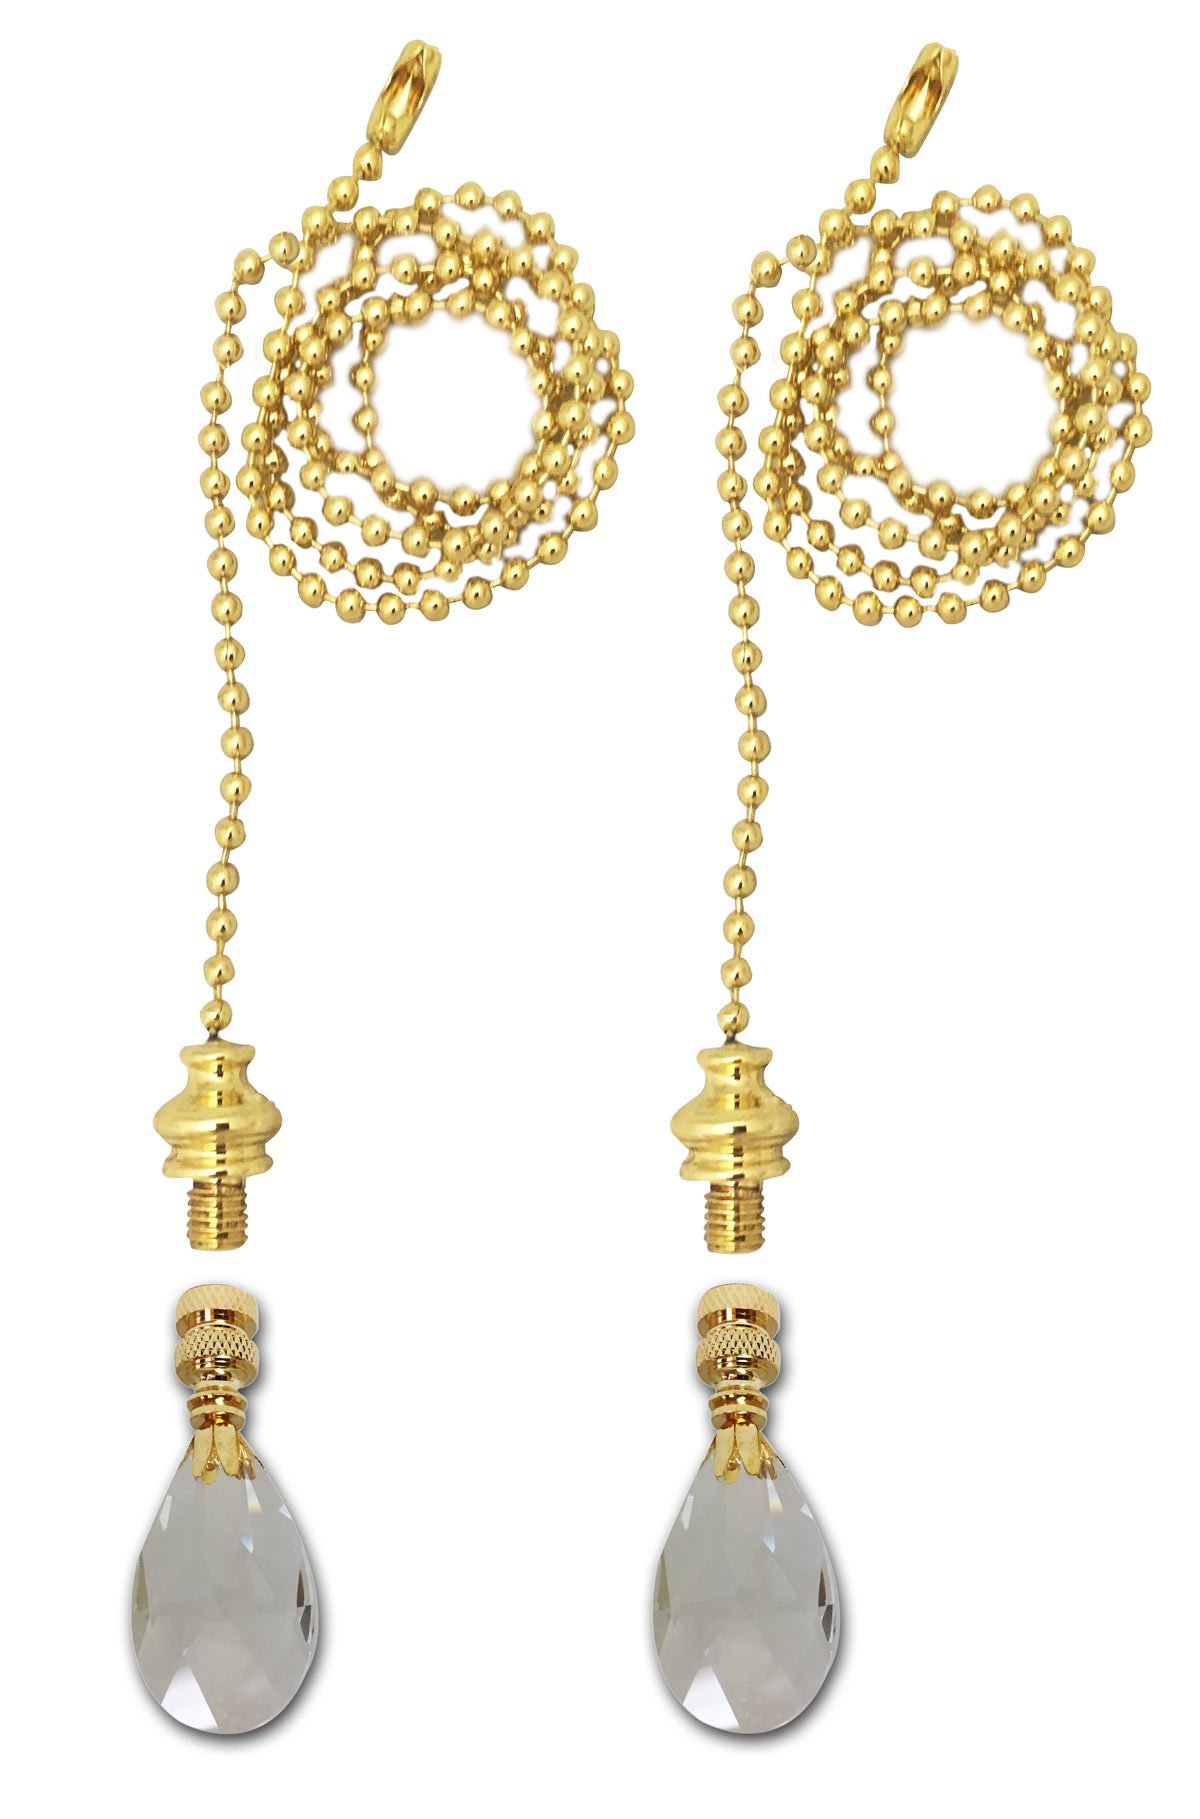 Royal Designs Fan Pull Chain with Radiant Teardrop Clear Crystal Finial - Polished Brass - Set of 2